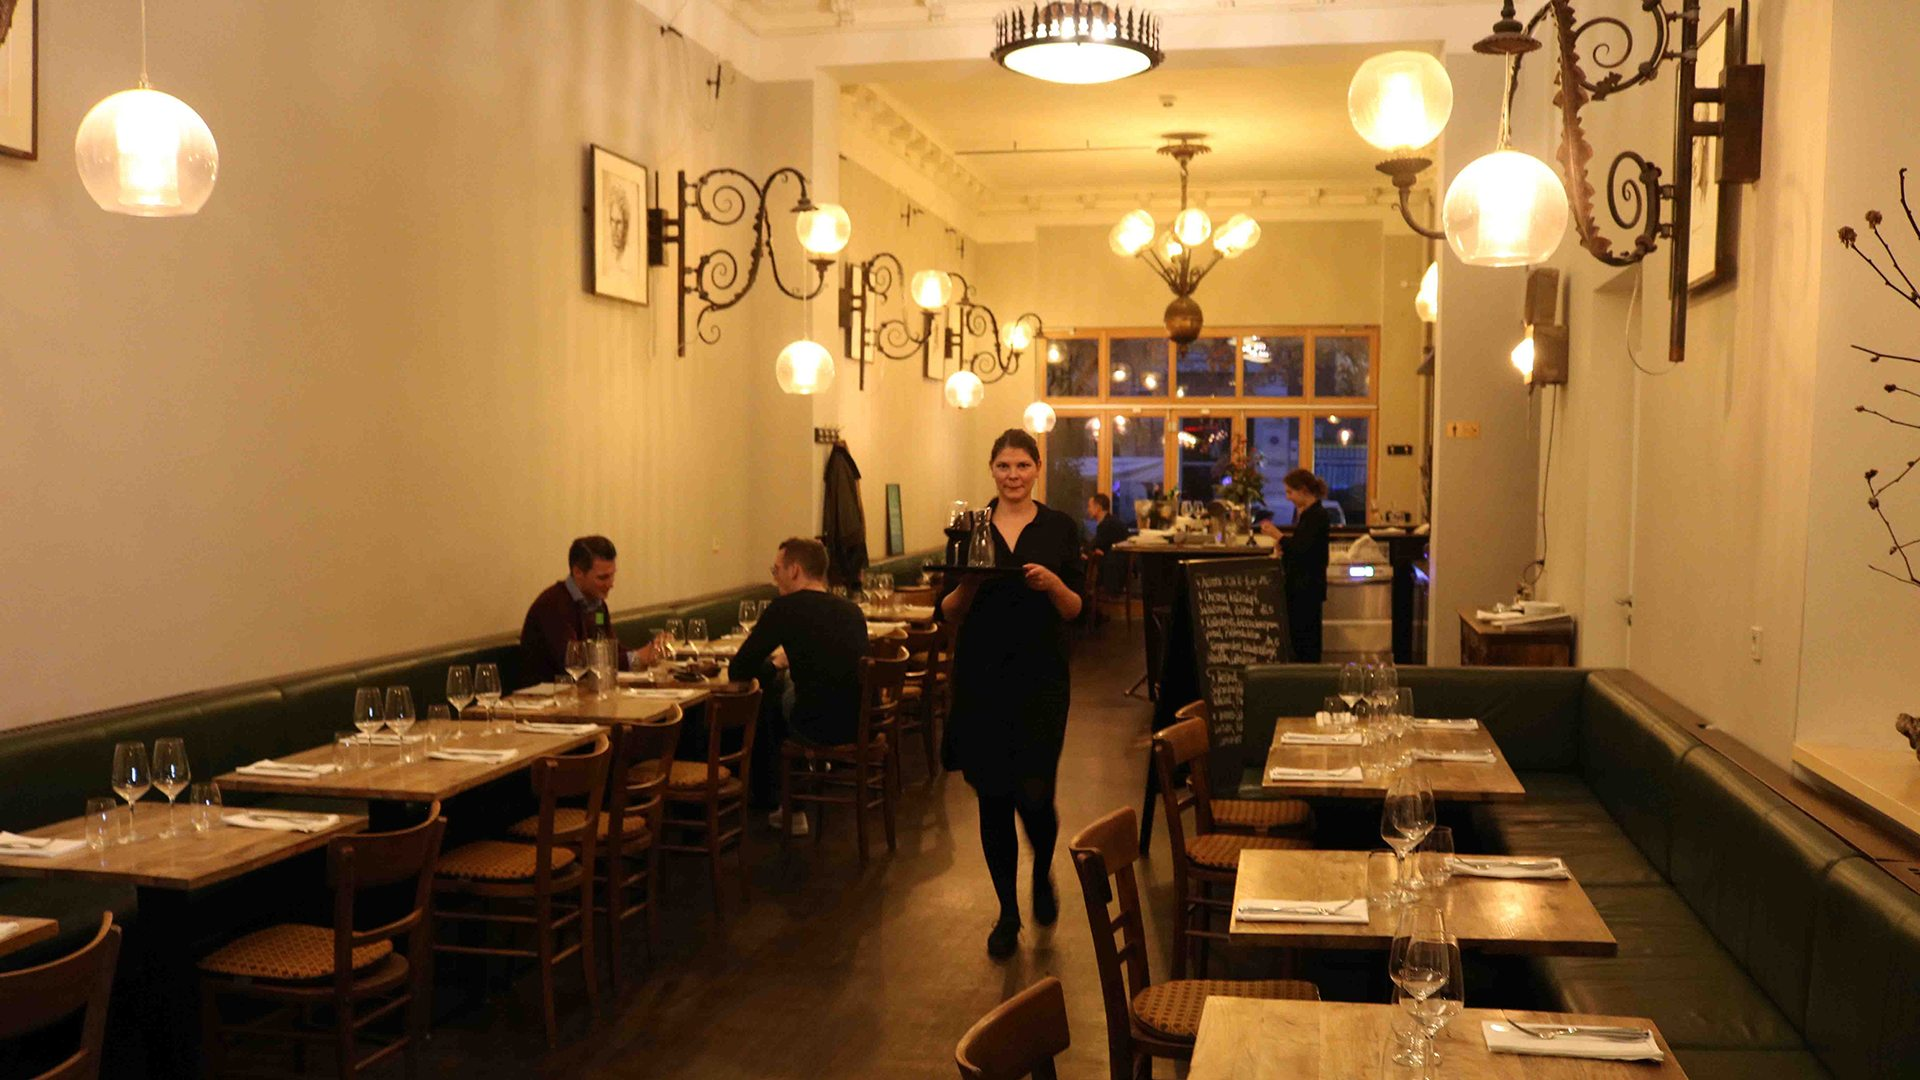 Traditionelle Küche Prag Brasserie Lumières: 100 Prozent Paris, Mitten In Berlin